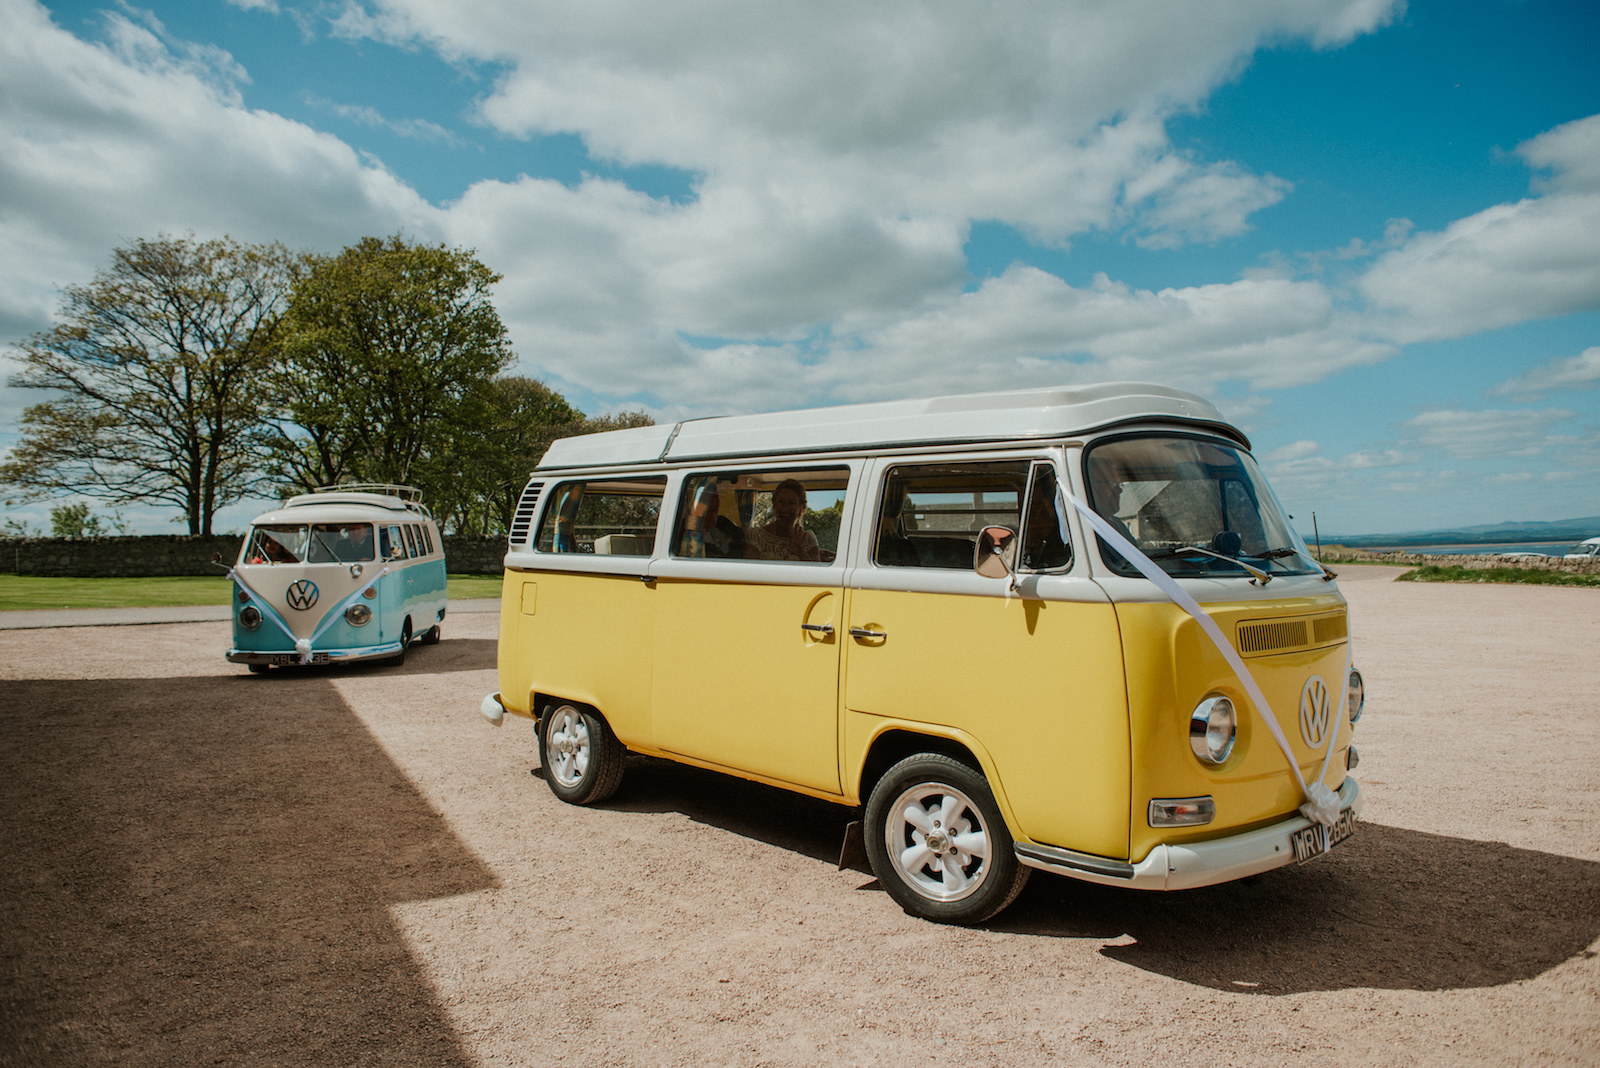 VW-wedding-campervan-scotland-7.jpg